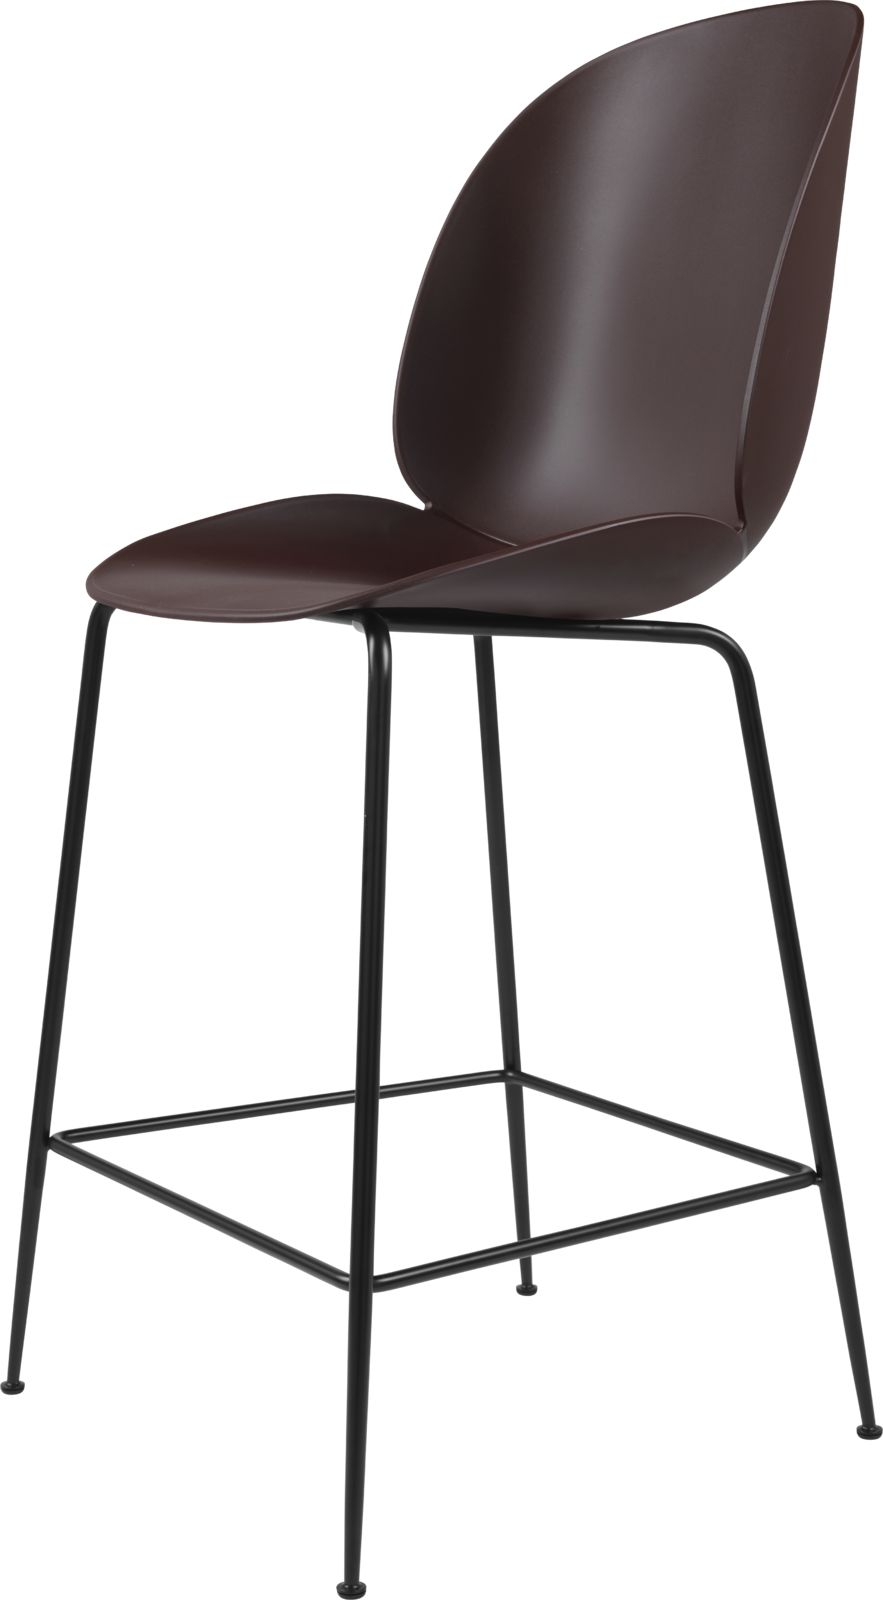 Gubi Beetle Bar Chair Plastic Shell Metal Legs